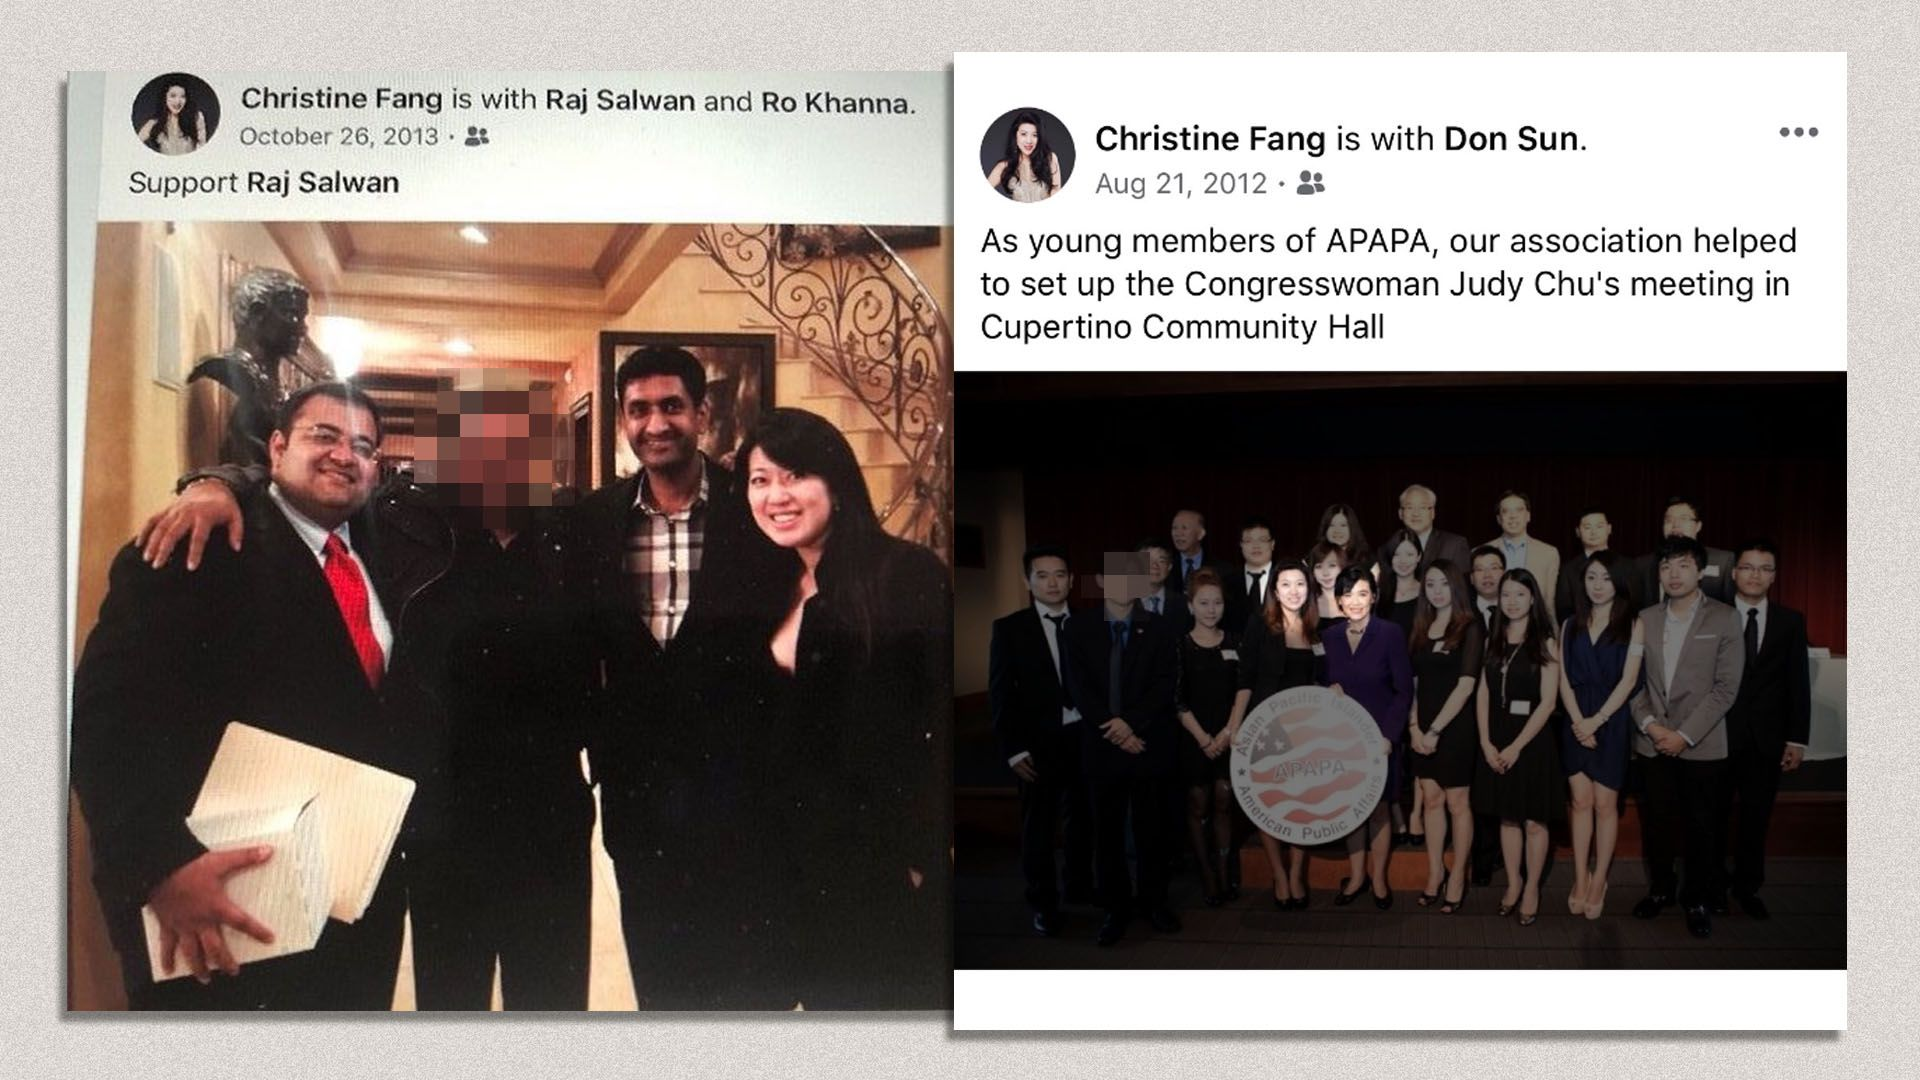 Photo of Fang with Salwan and Khanna and of Fang with Chu and APAPA